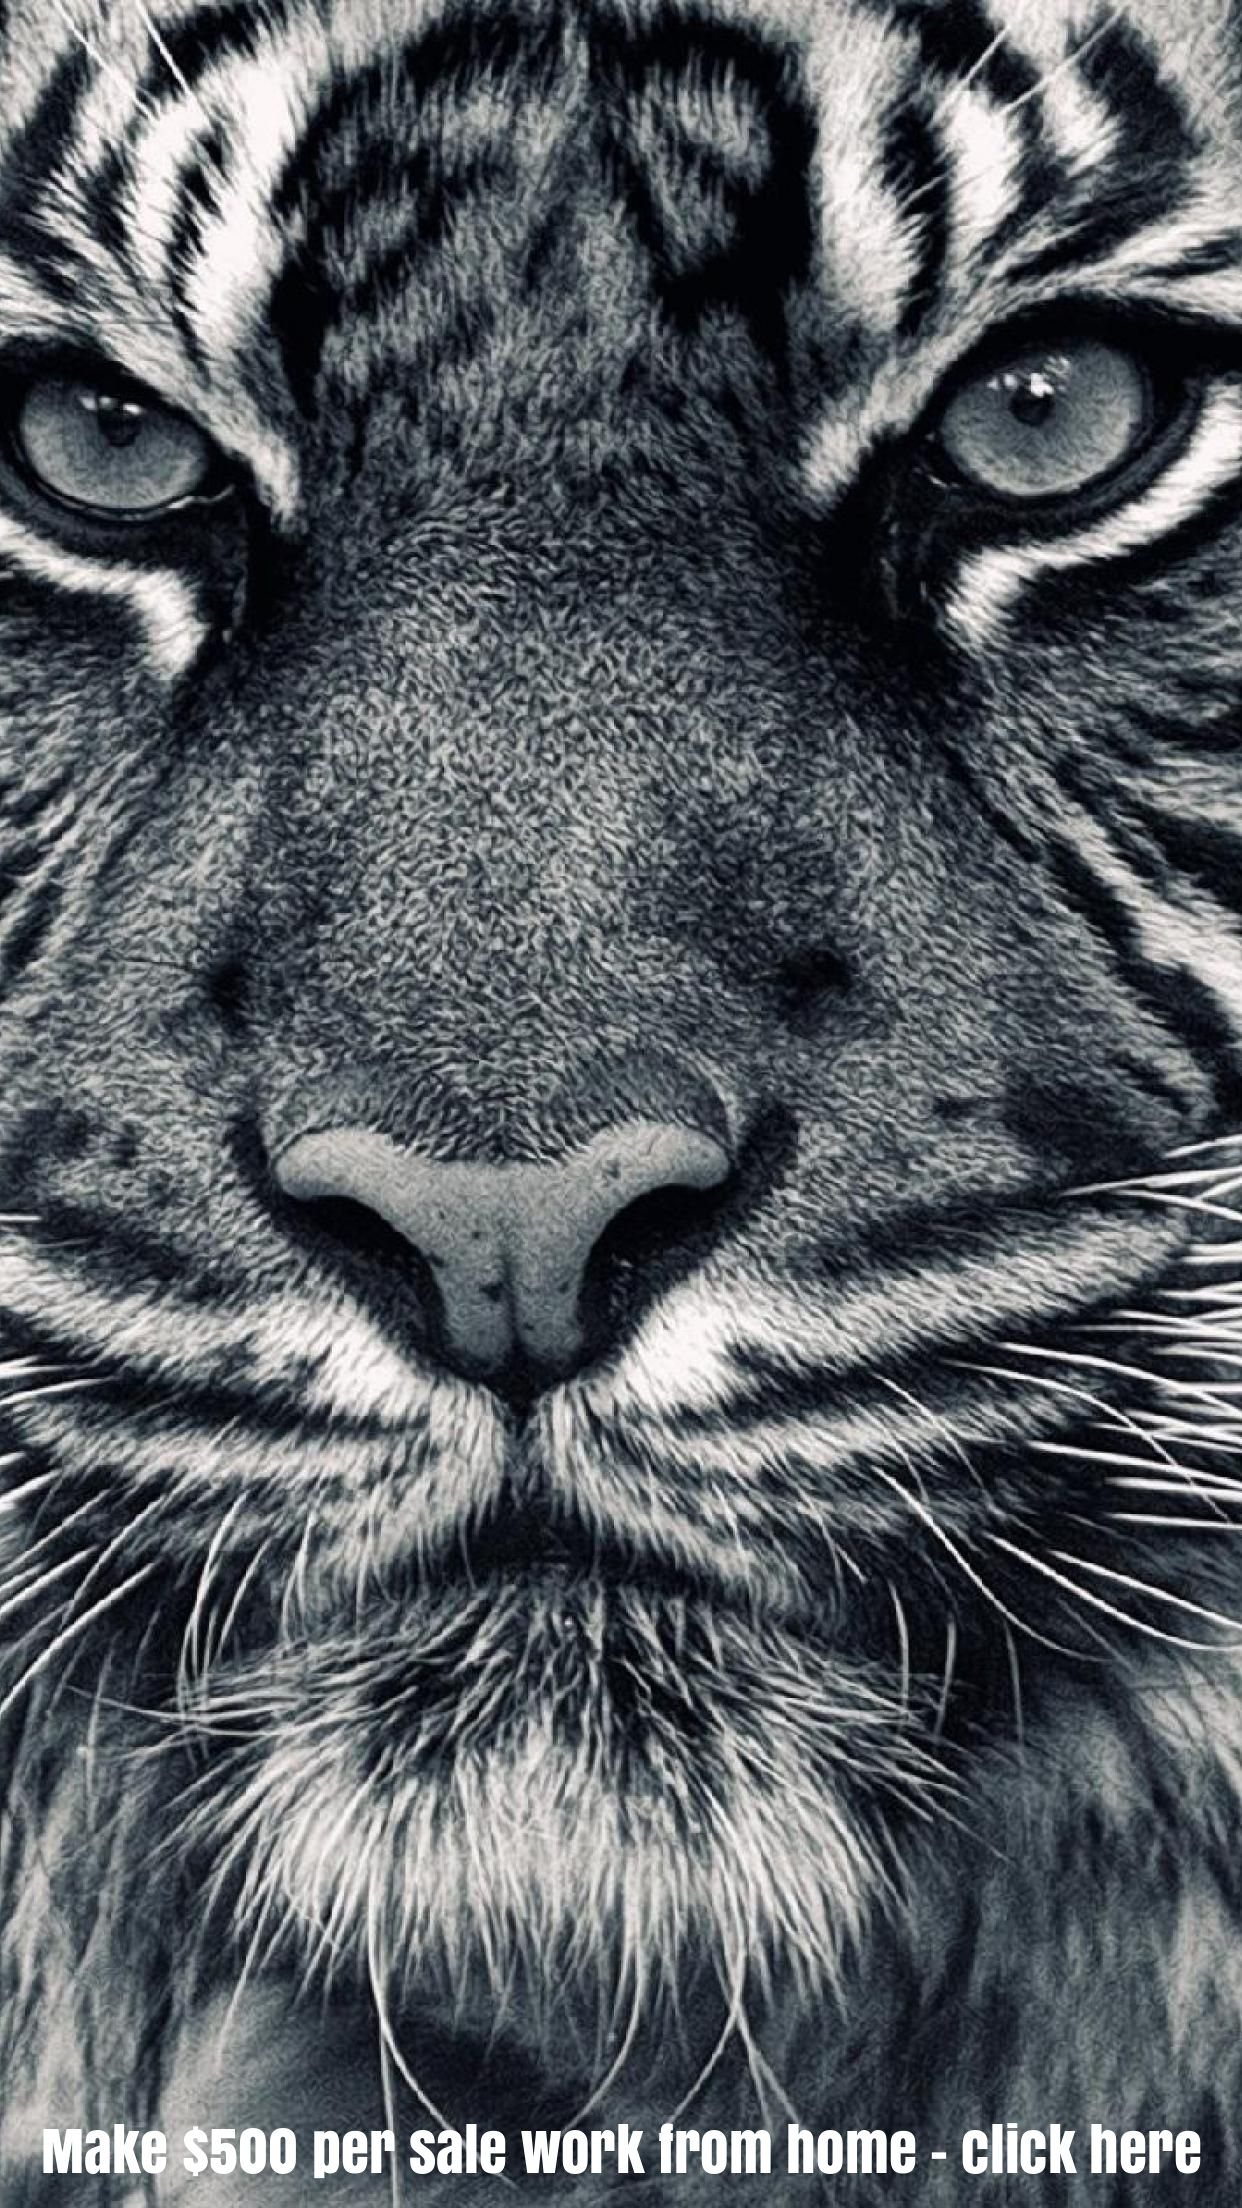 Grey Tiger iphone background wallpaper Tiger wallpaper